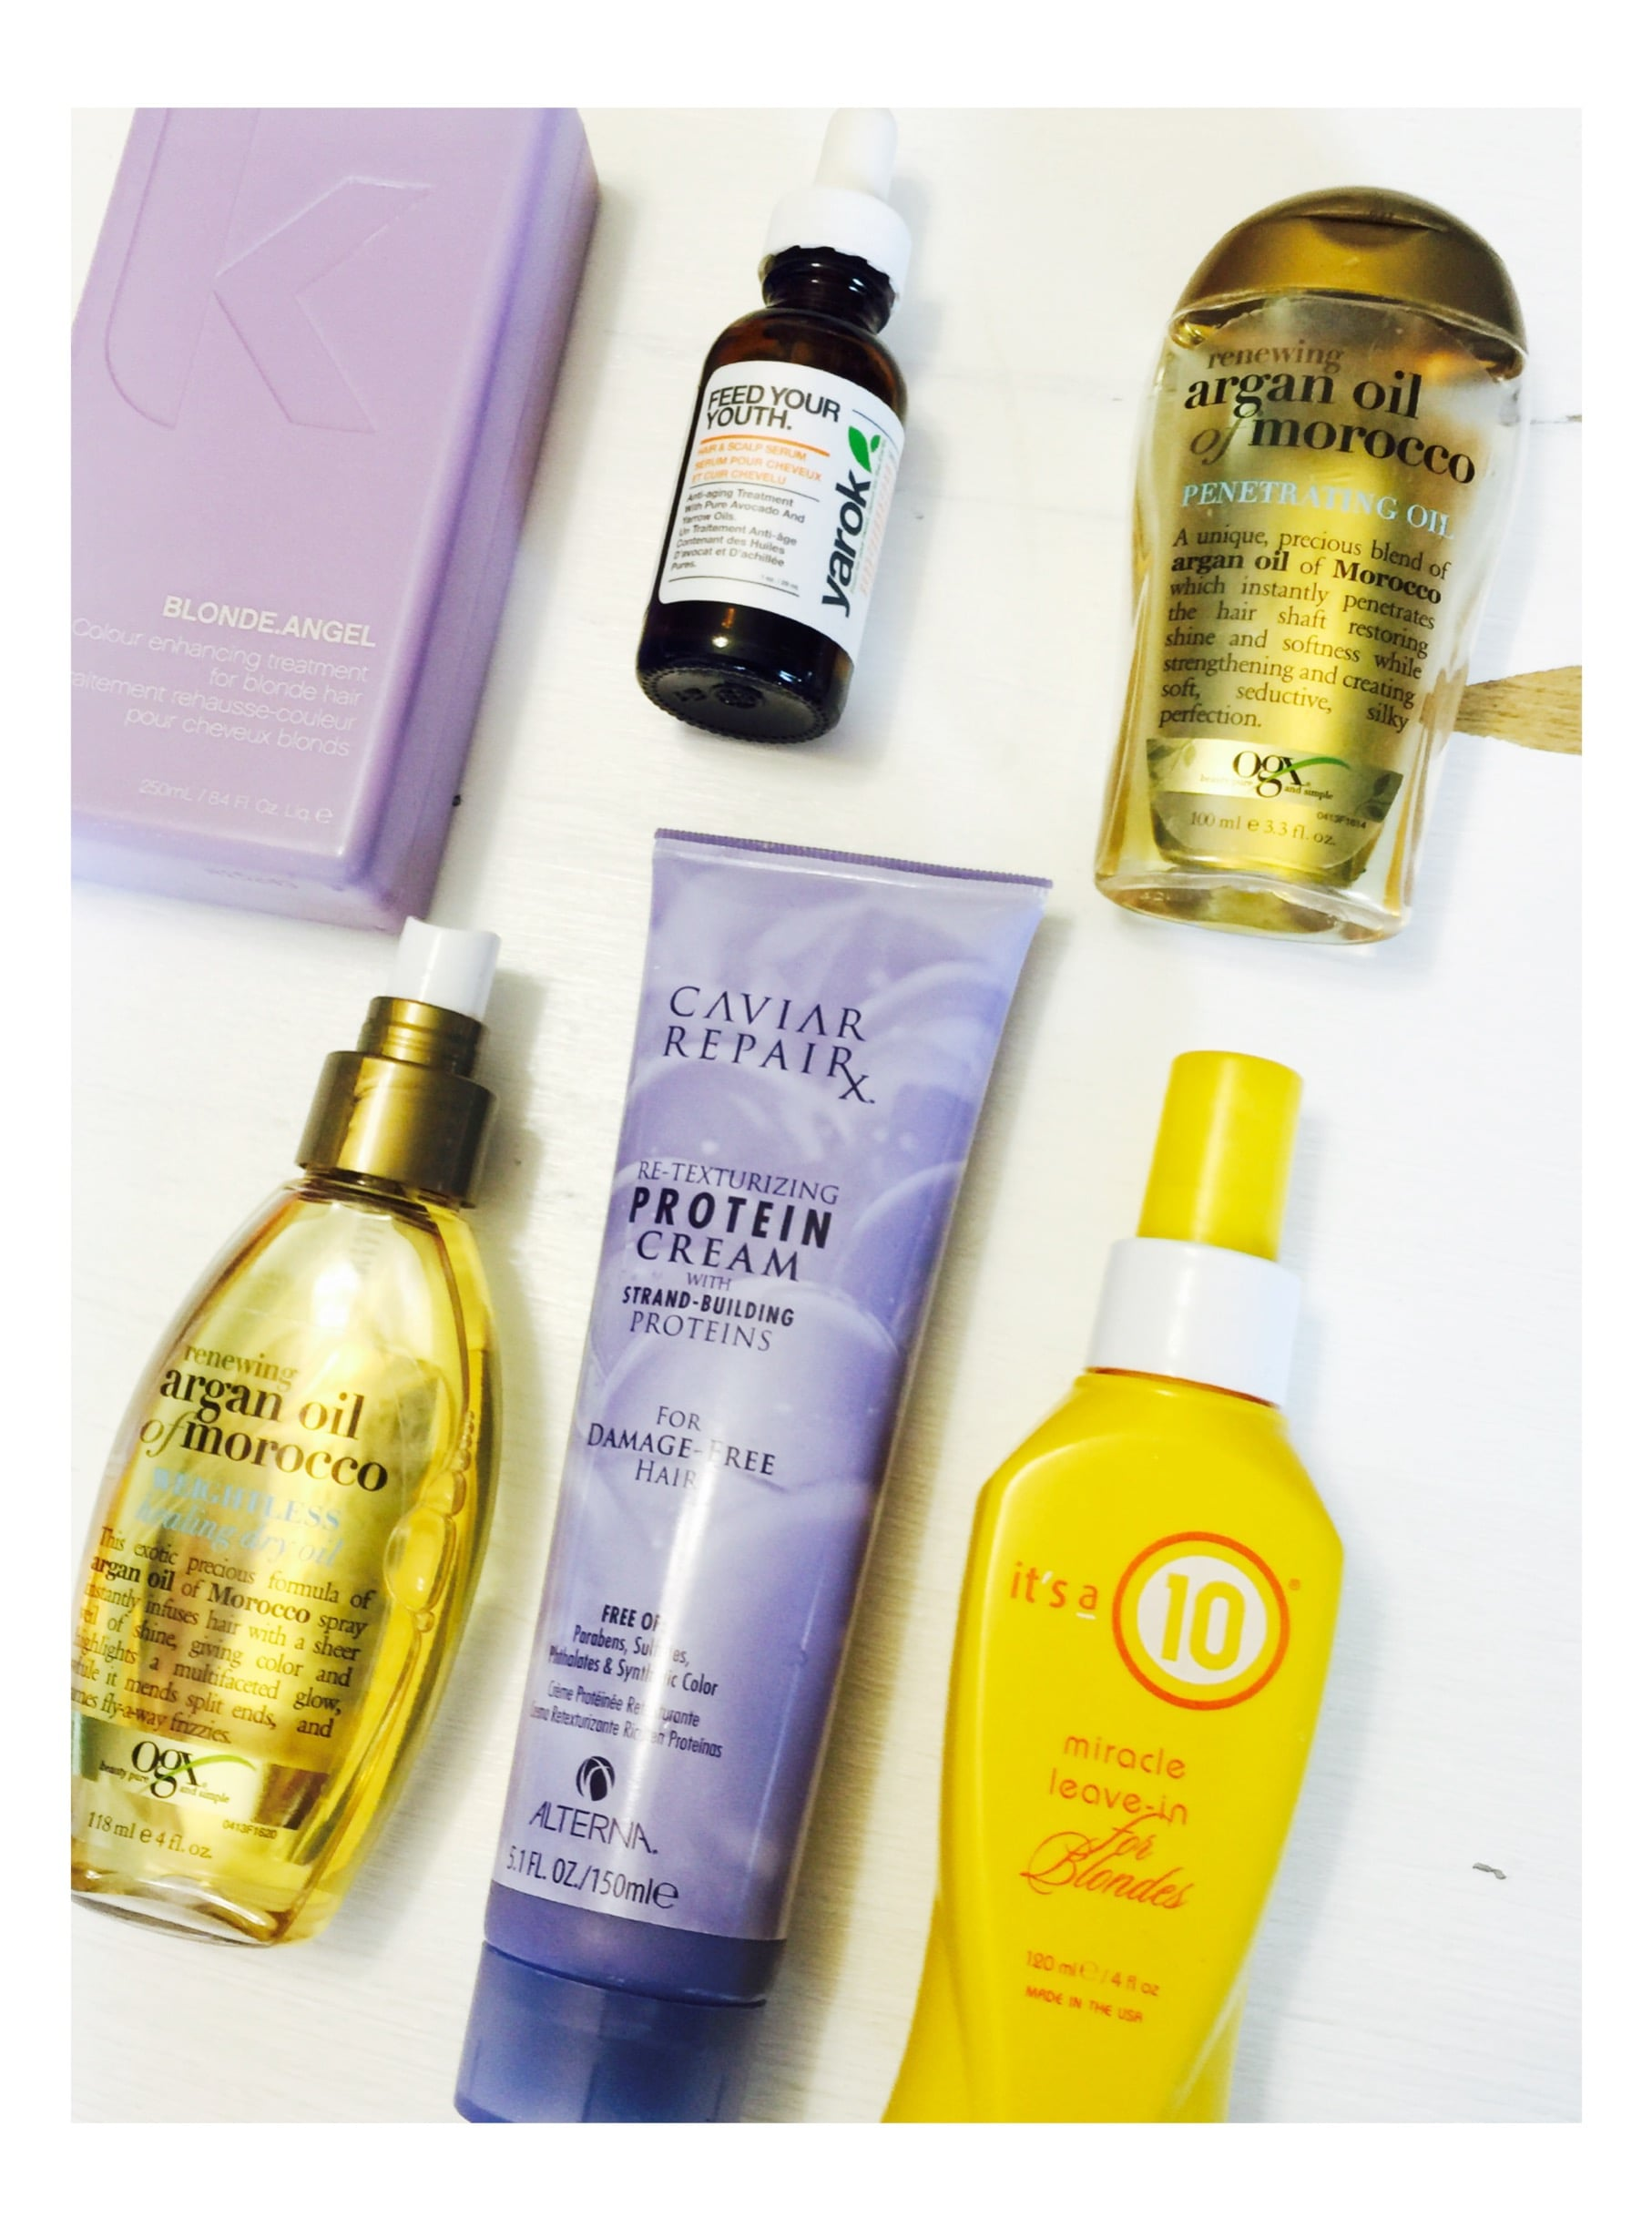 * Blonde Angel Purple Shampoo and Conditioner *Yarok Hair & Scalp Serum * Argon & Morocco oil (just what I have now) * Caviar RepairX Re-texturizing Protein Cream * It's a 10 Miracle Leave in For Blondes